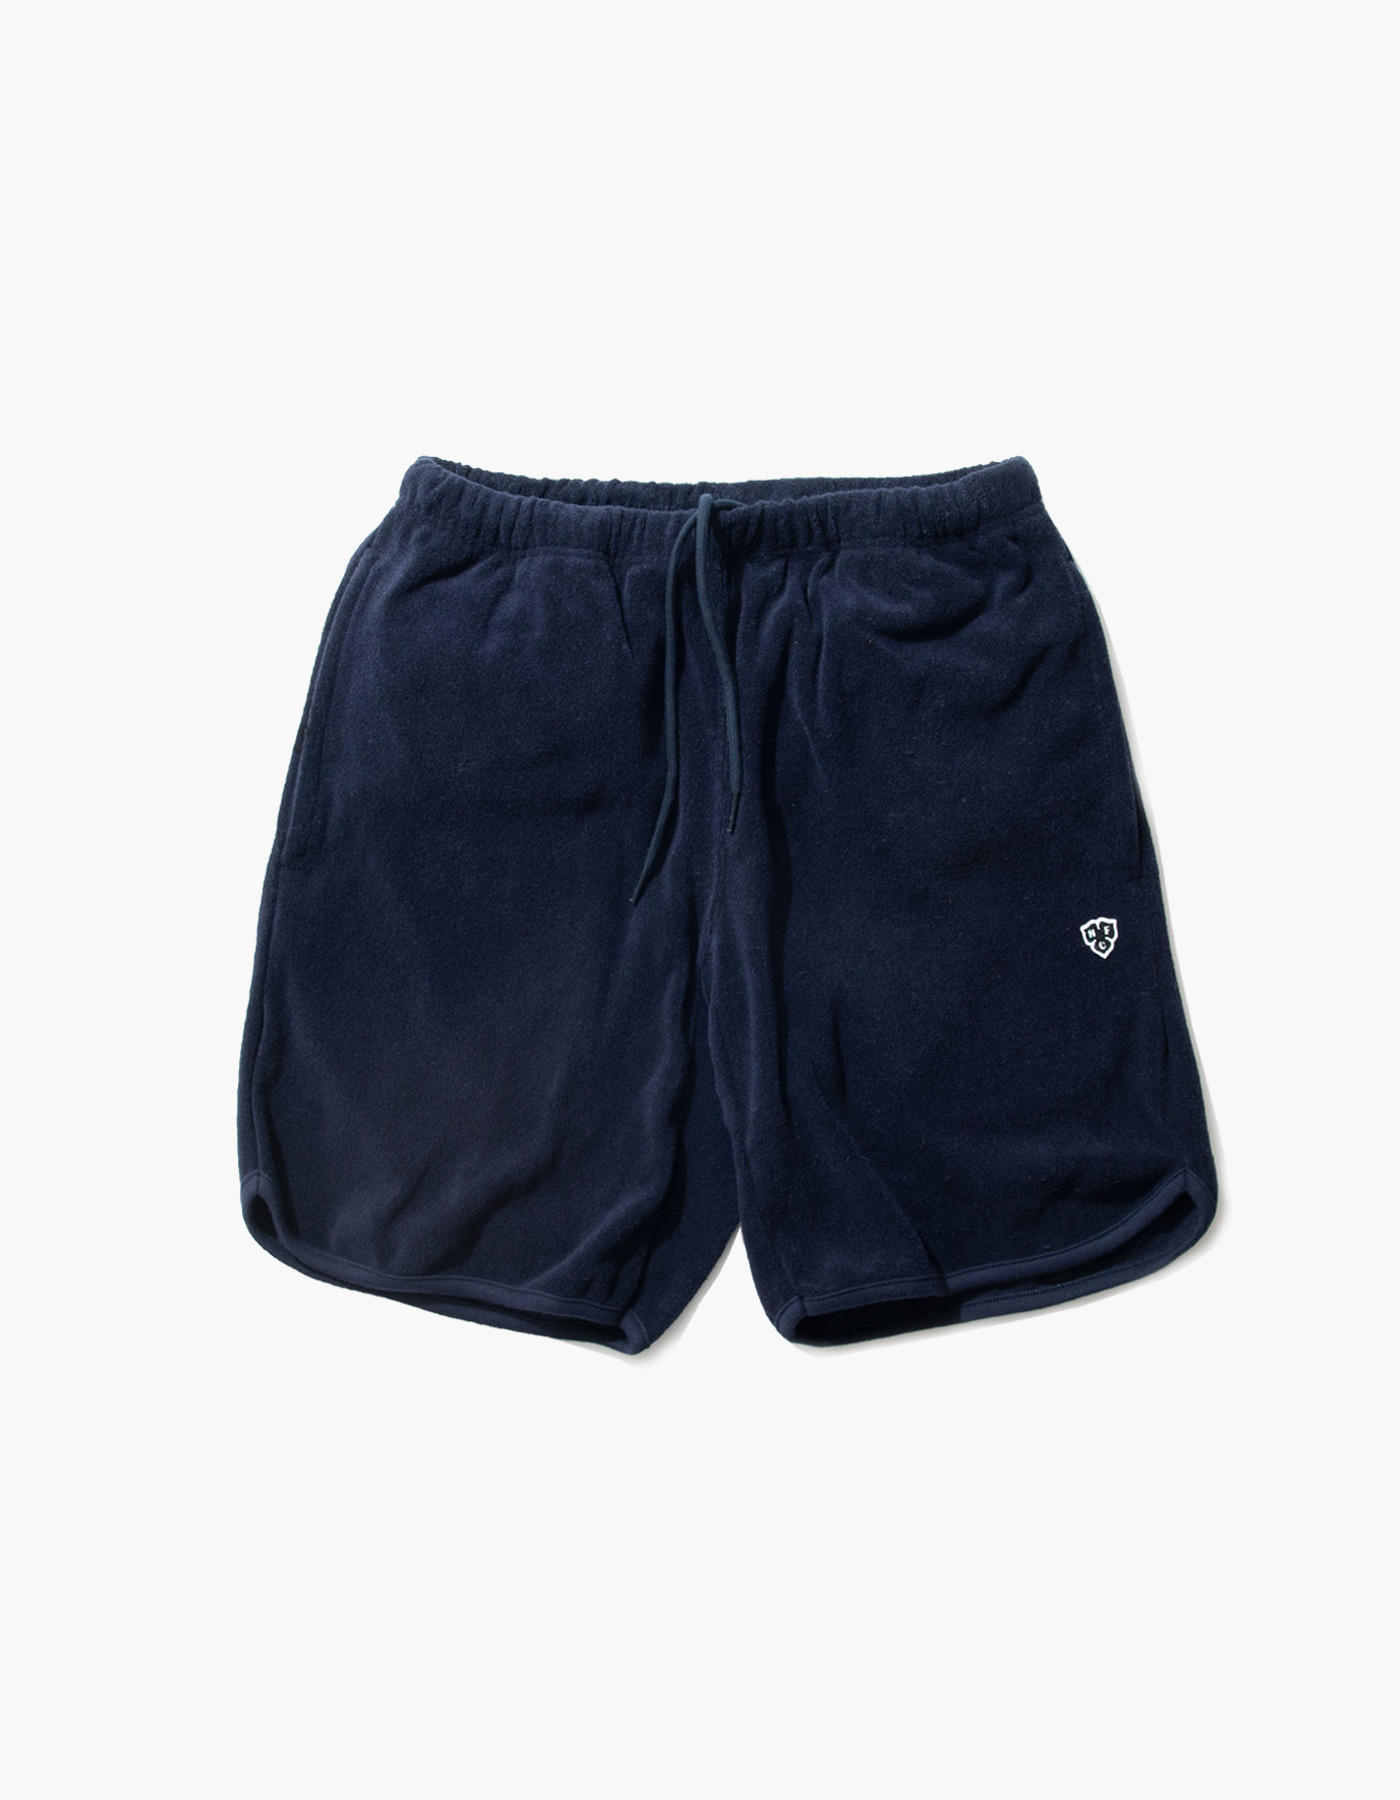 HFC CREST TOWEL SHORTS / NAVY